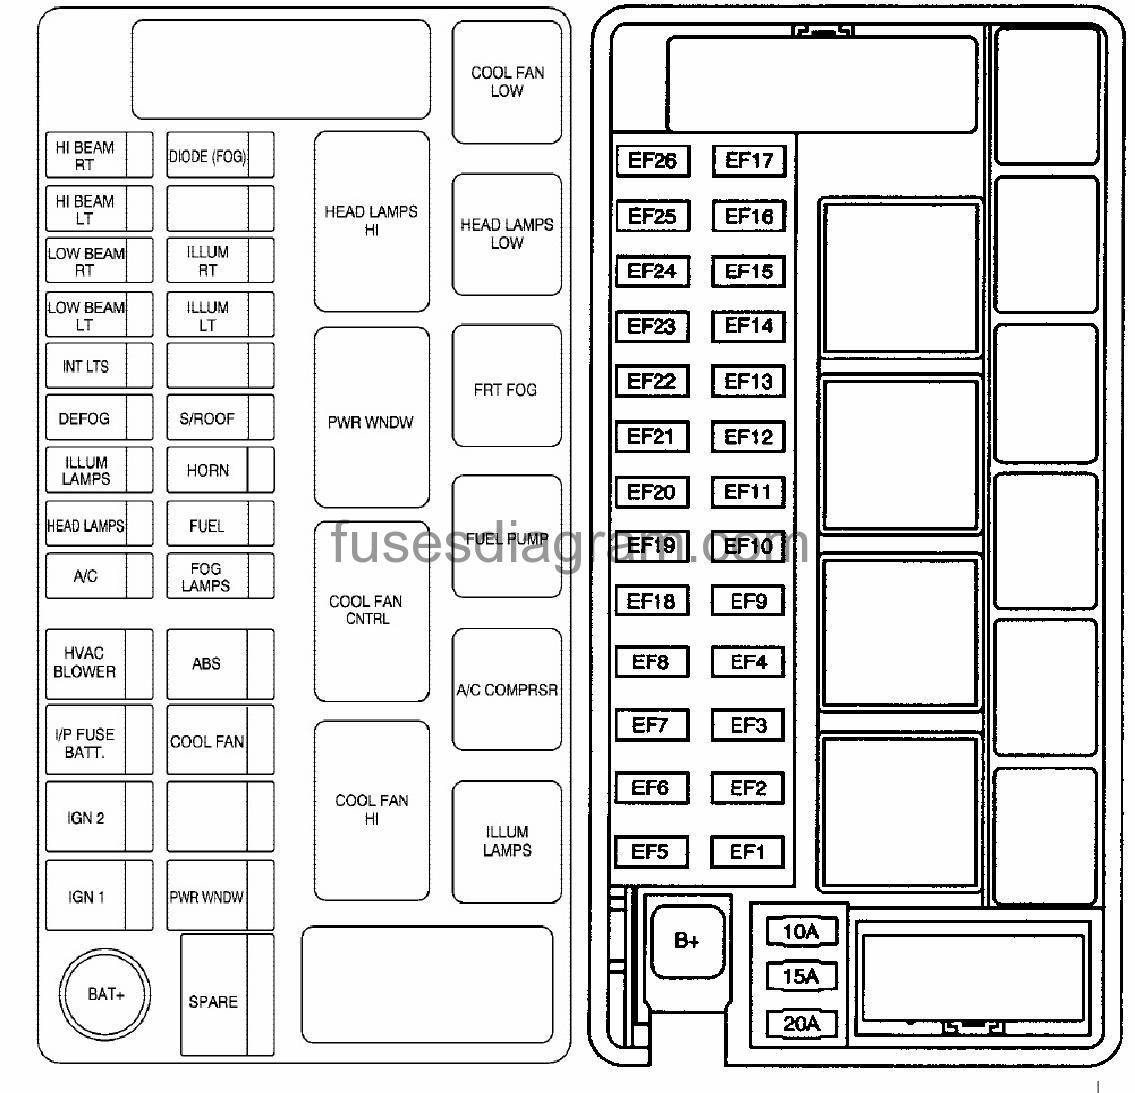 hight resolution of chevy aveo fuse diagram wiring diagram schematic chevrolet aveo 2006 fuse box 2009 chevy aveo fuse